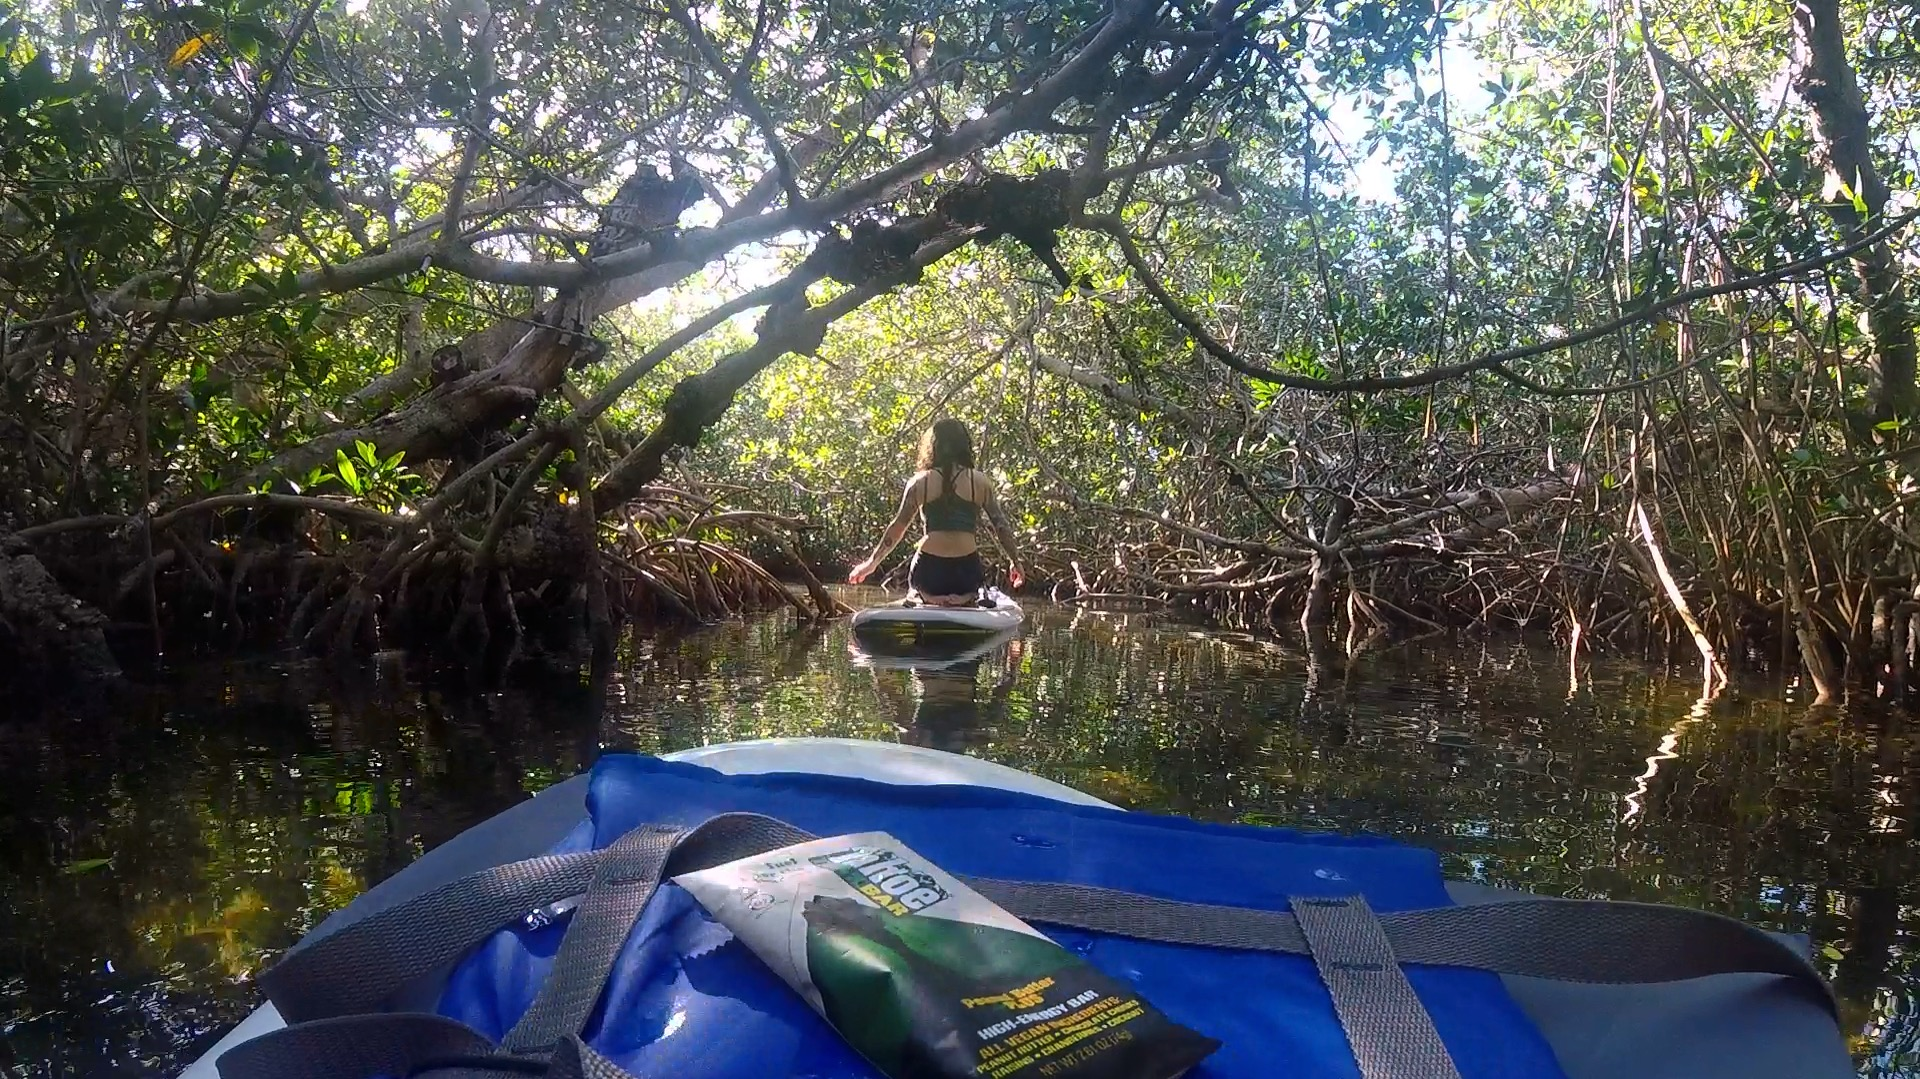 You can get lost in the mangrove tunnels for hours. We brought the perfect snack along.